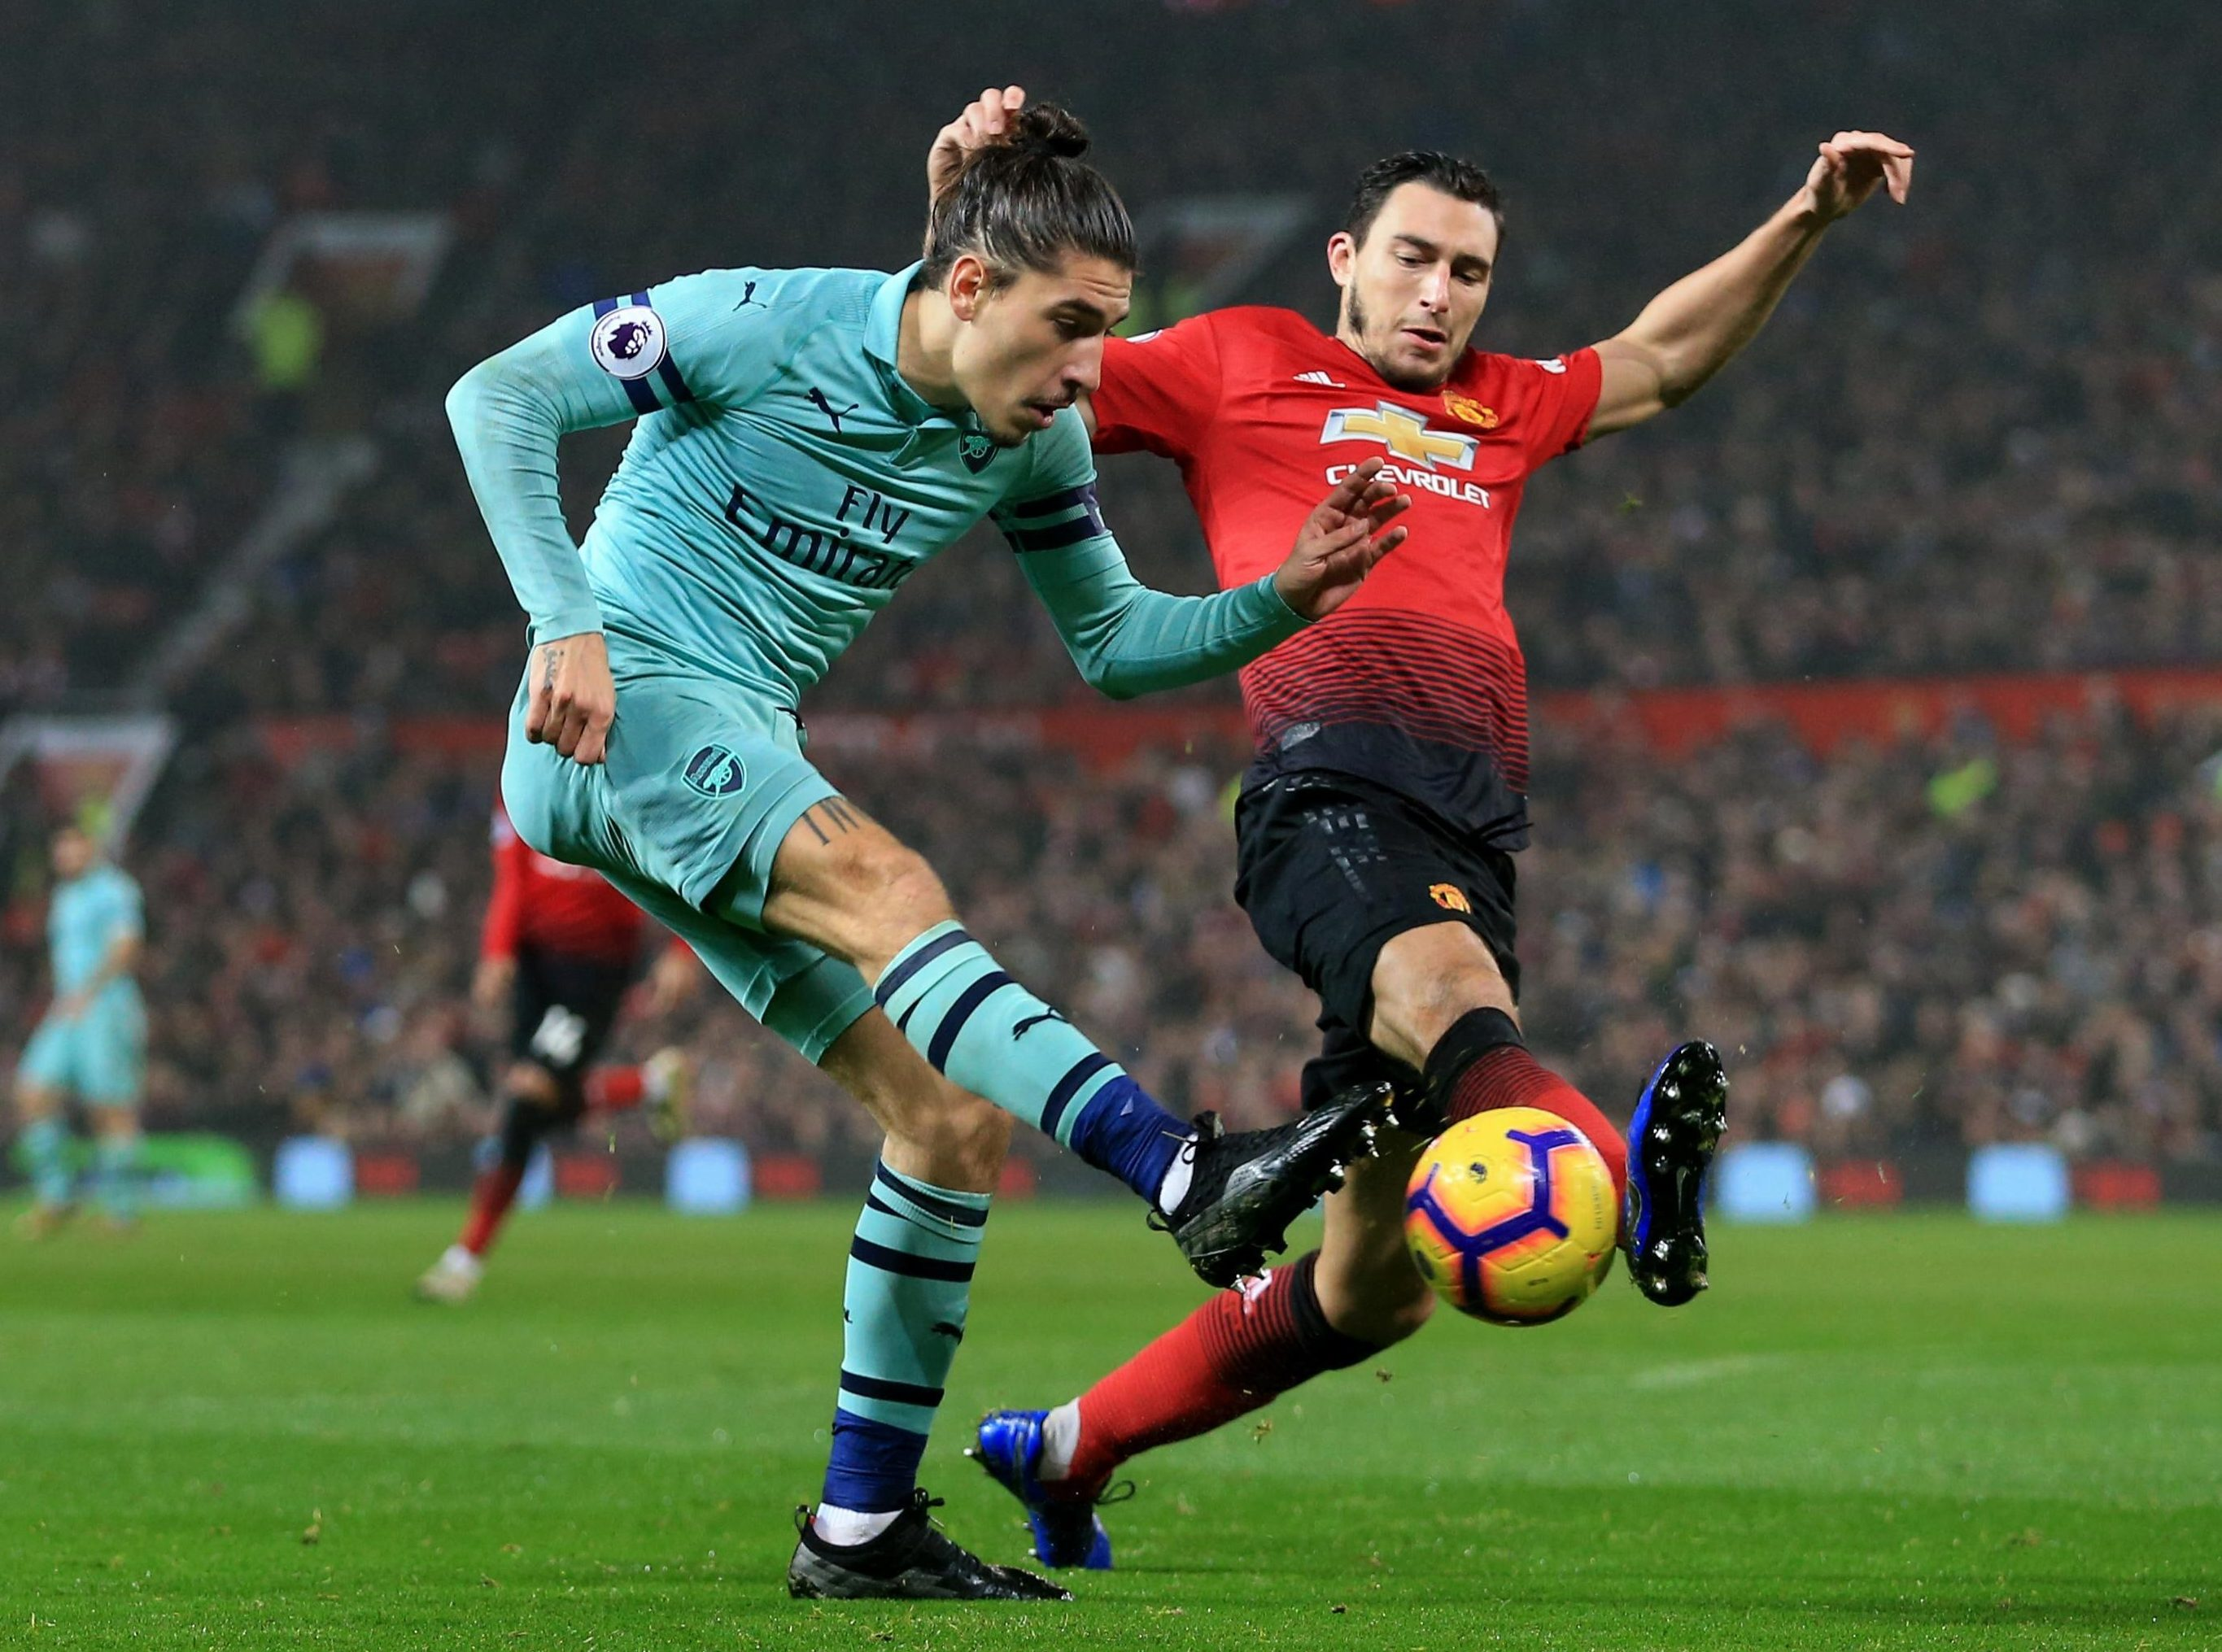 Darmian has struggled for game time under Mourinho- a loan spell could provide him with more game time and a way out